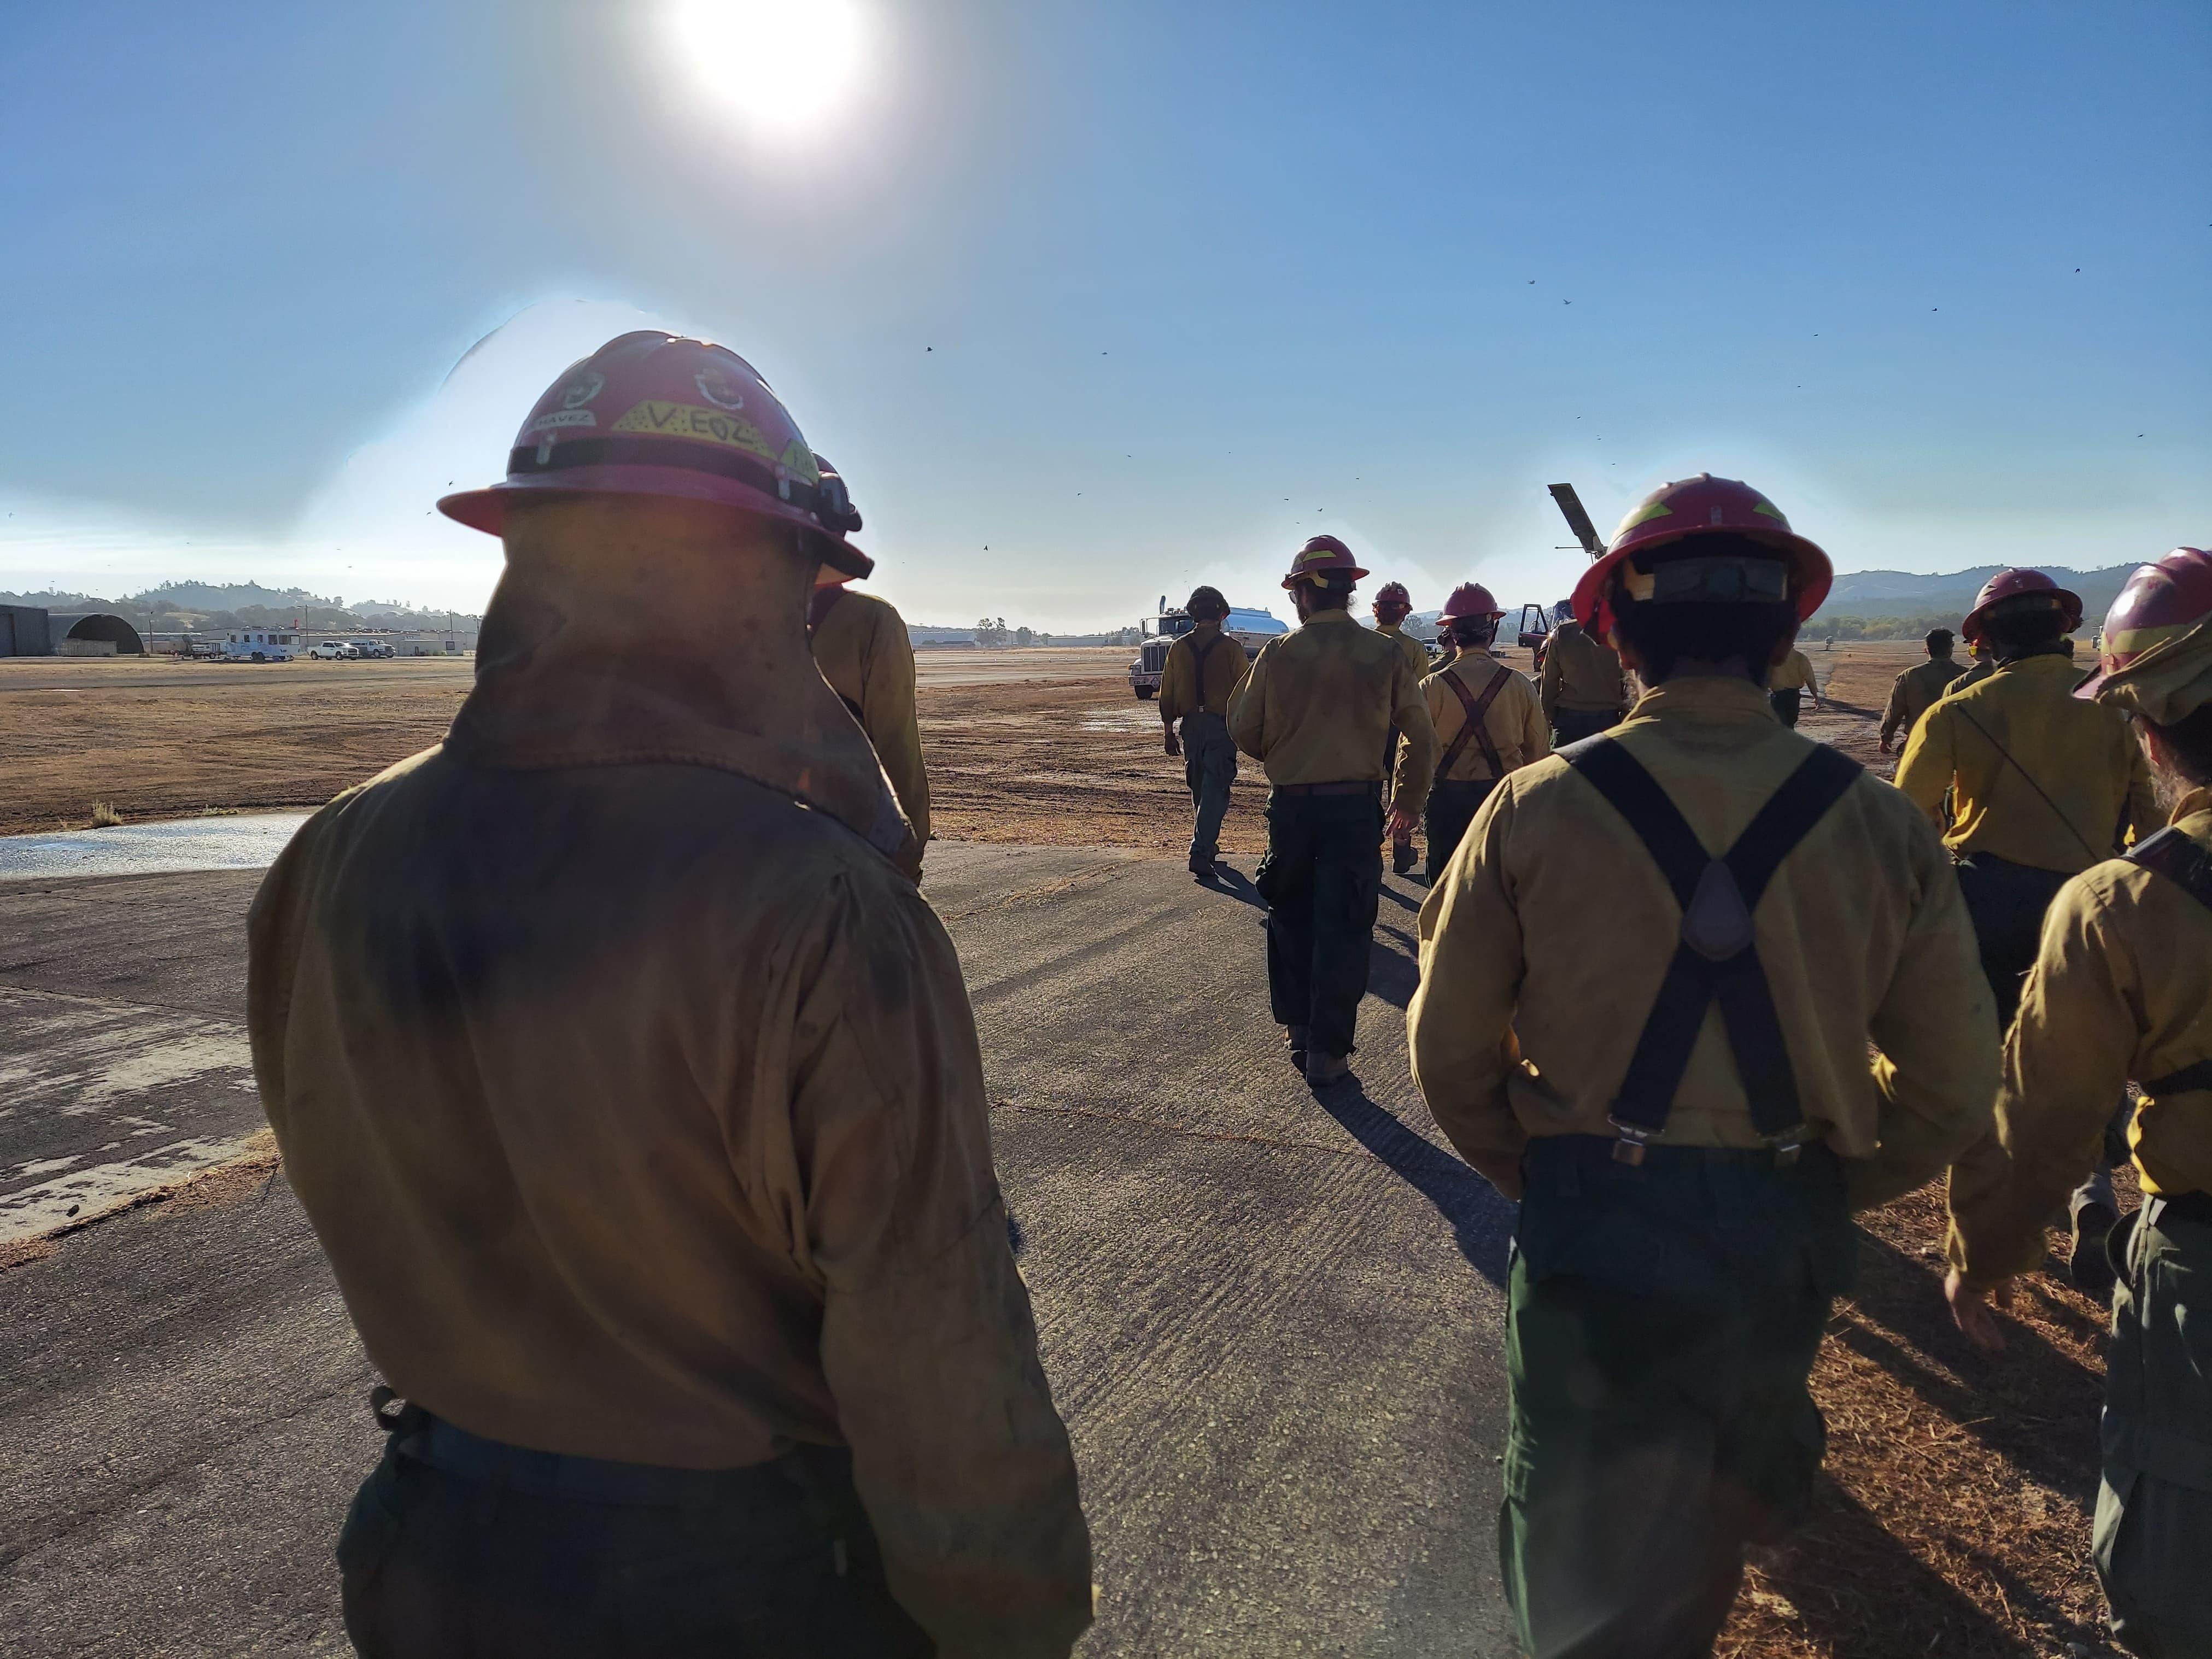 Firefighters walking towards a helicopter